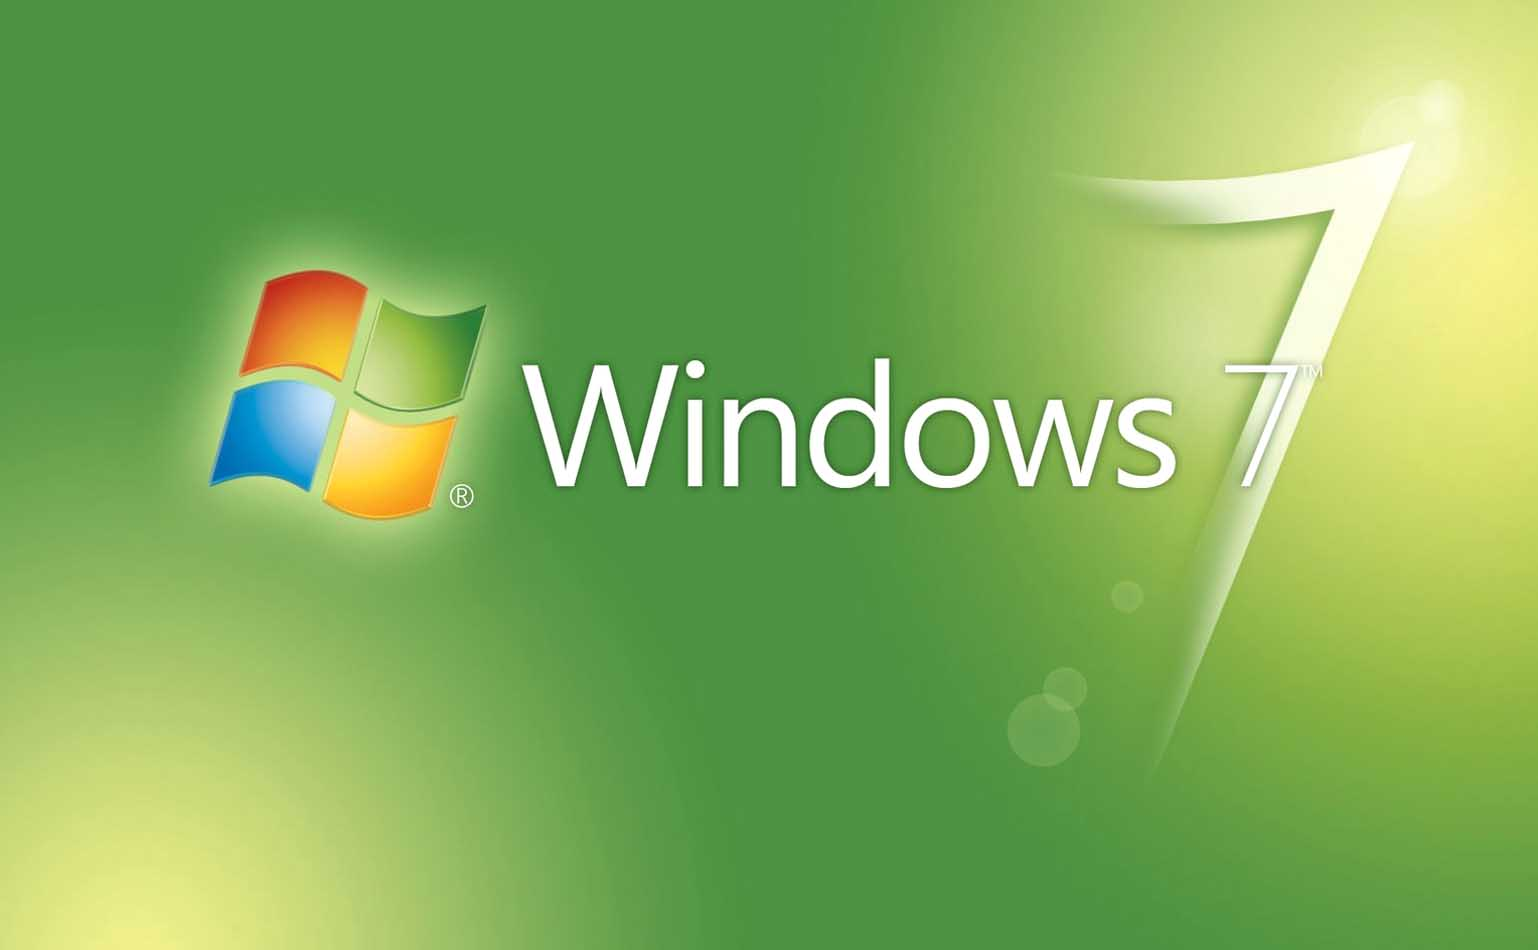 windows 7 ultimate download love wallpapers for windows 7 1538x950